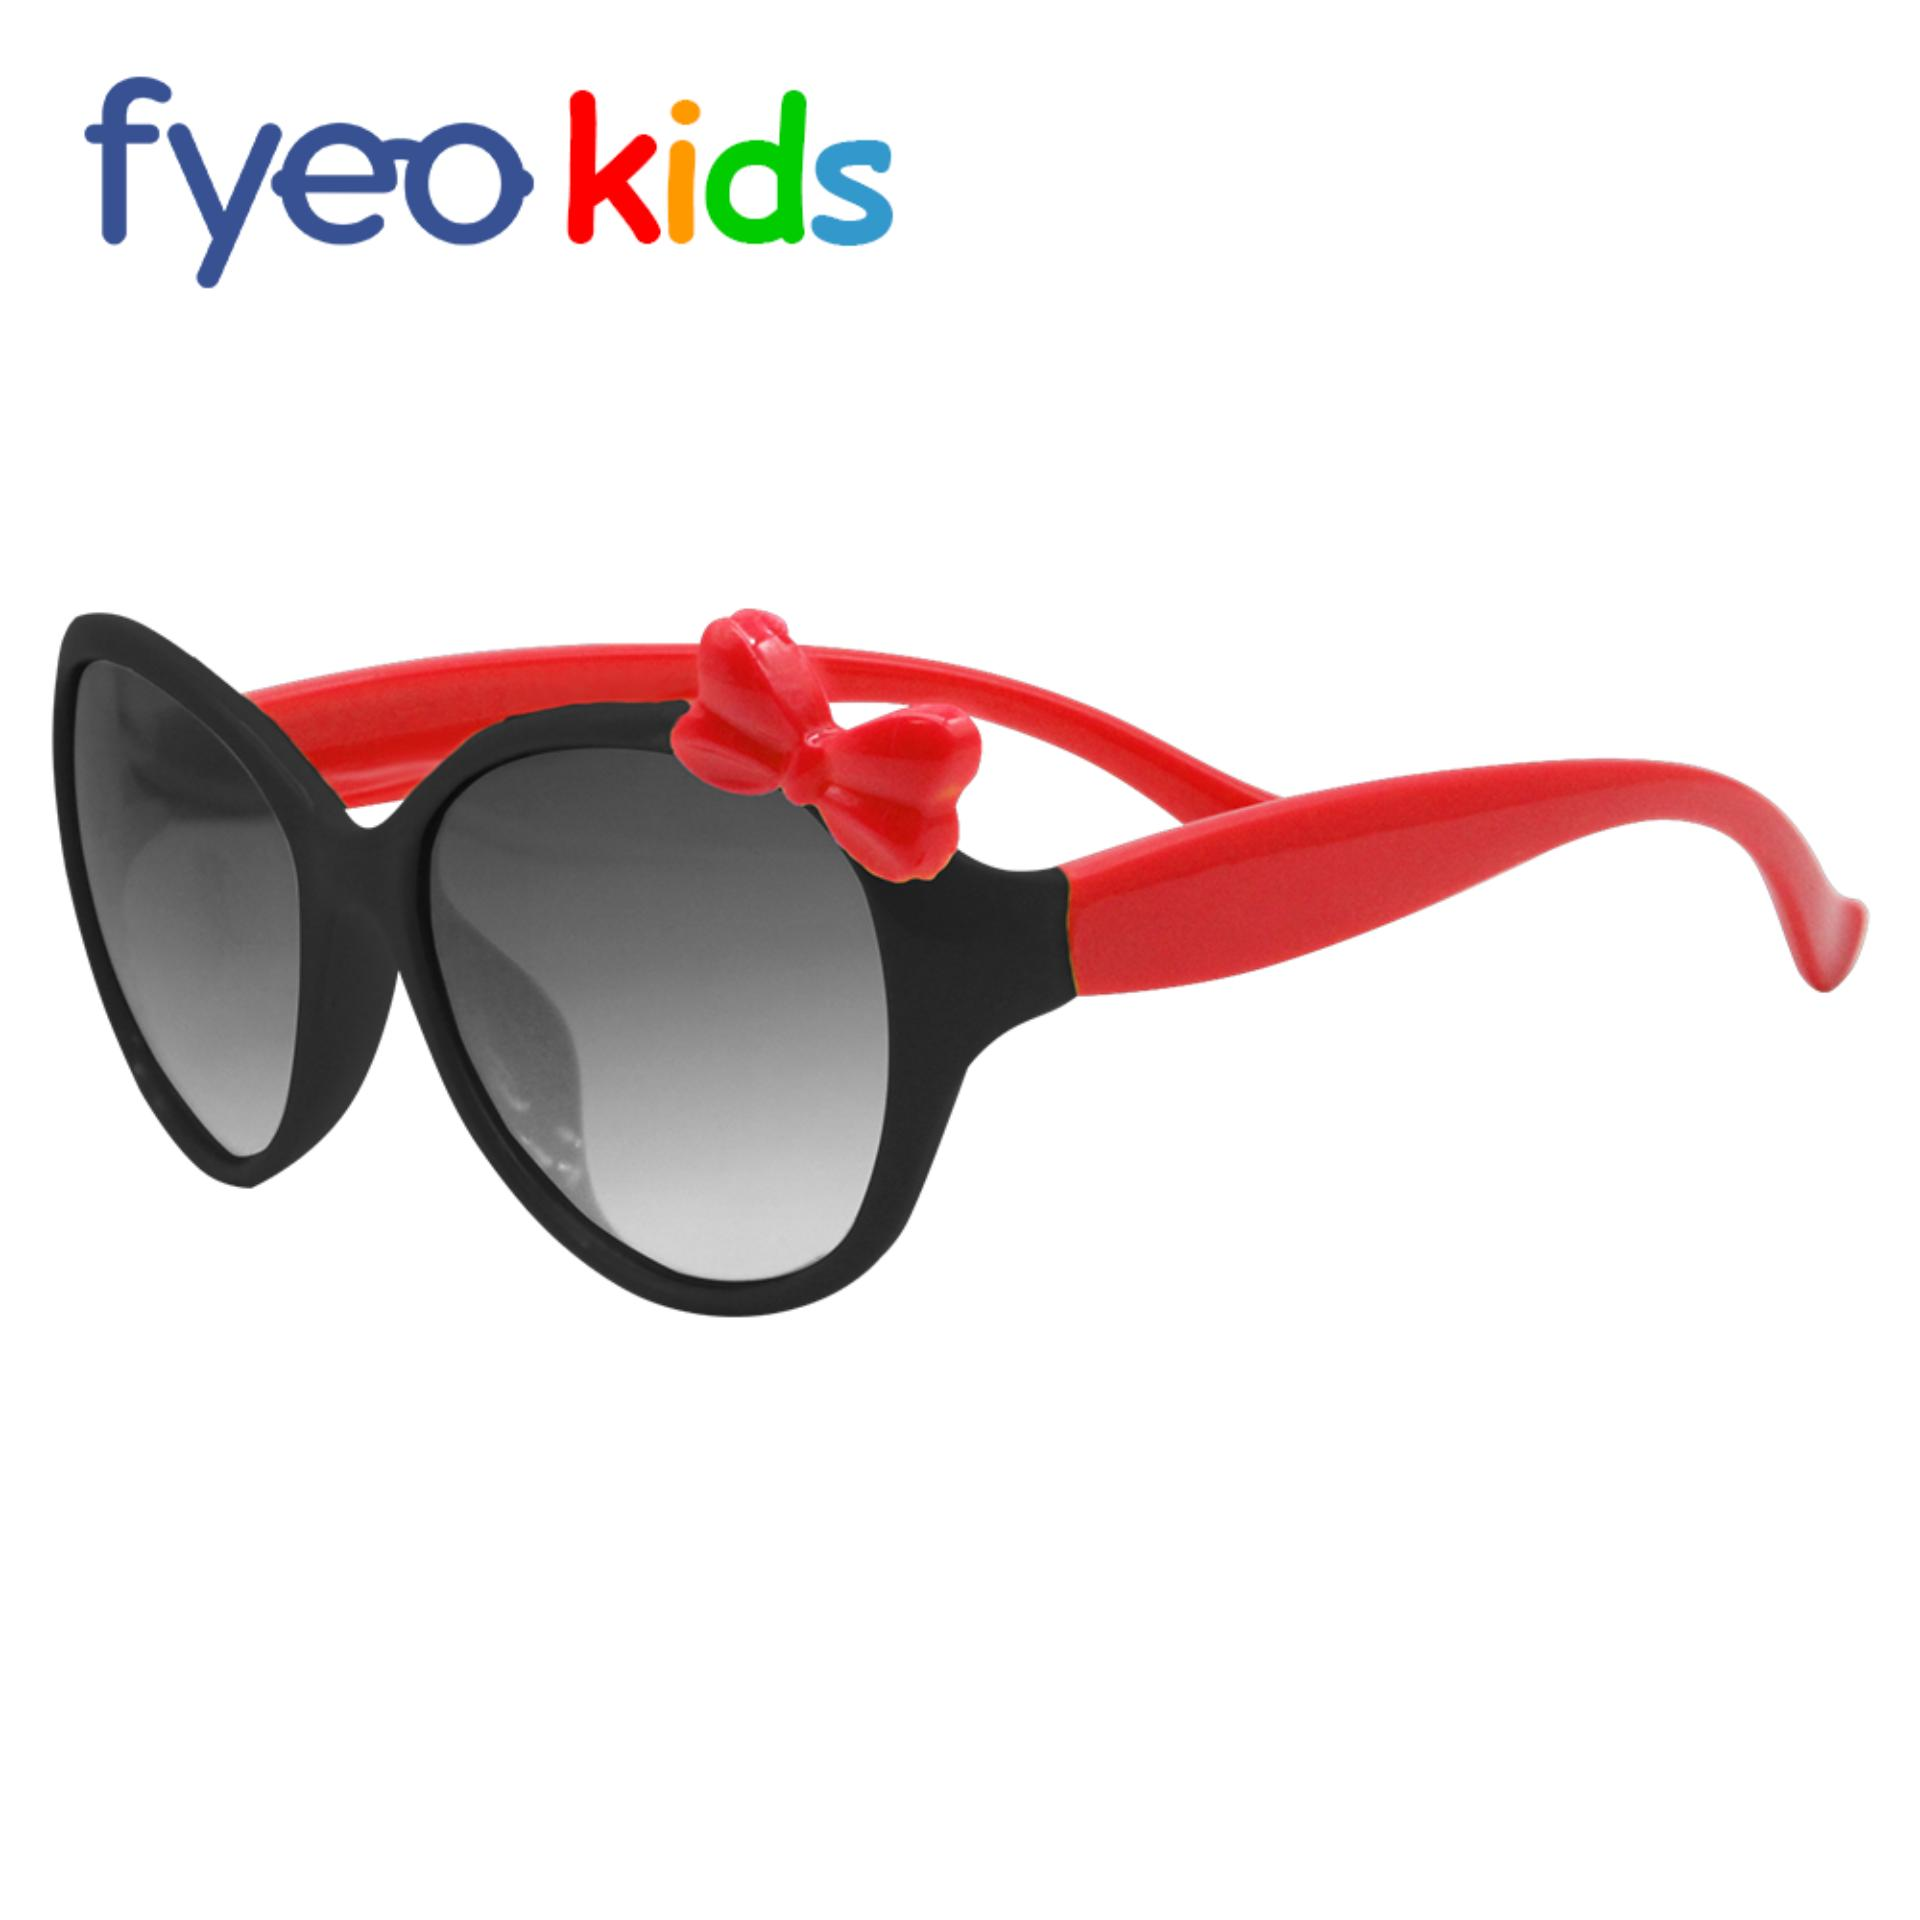 c5c3a4a376 Anti-UV Sunglasses for Kids Girls Ribbon Fashion Sunglasses Frame Black  Leg Red